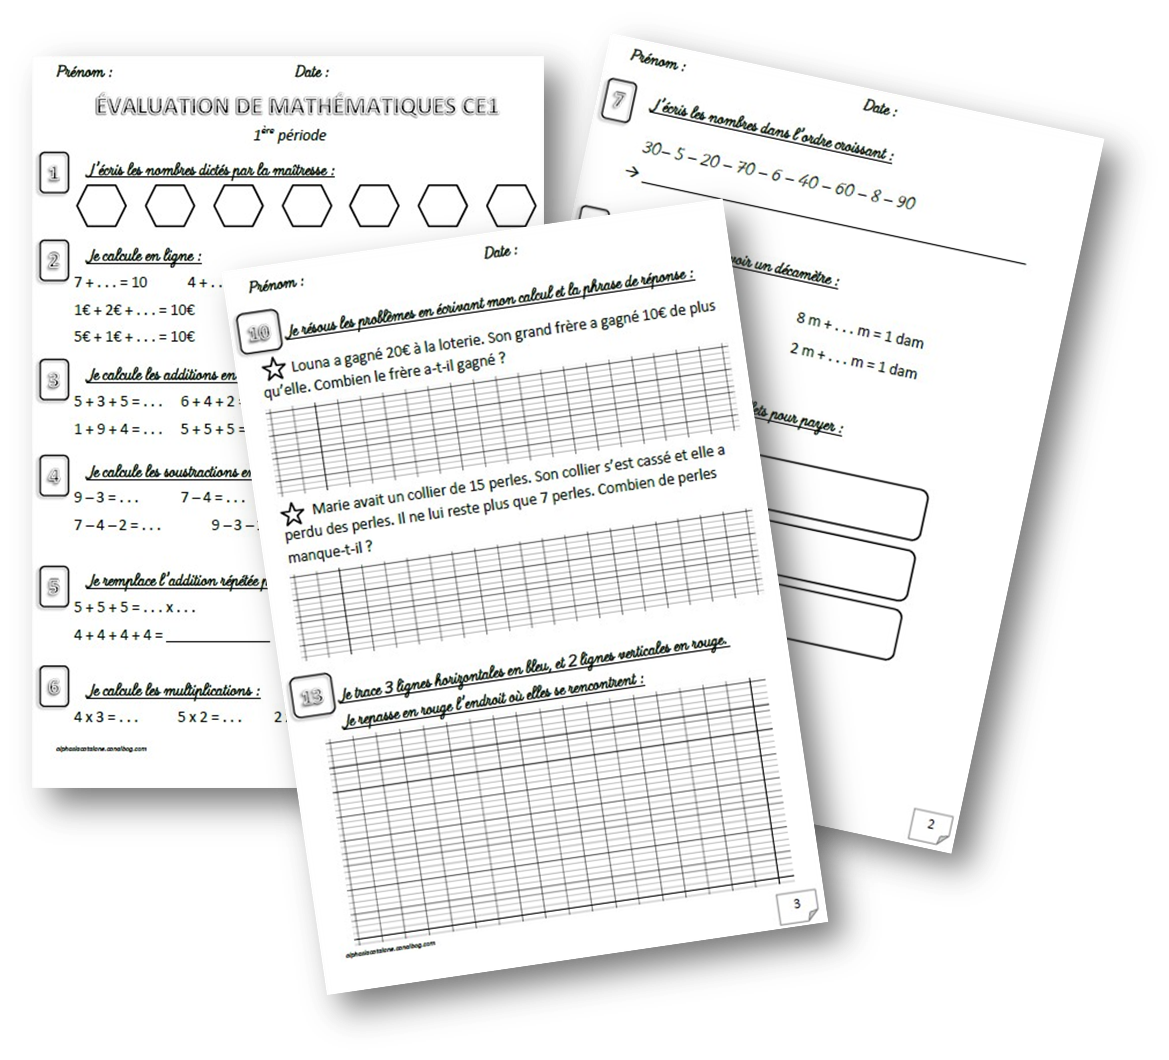 Evaluation Calendrier Ce1.Evaluations De Mathematiques Ce1 1er Trimestre Periode 1